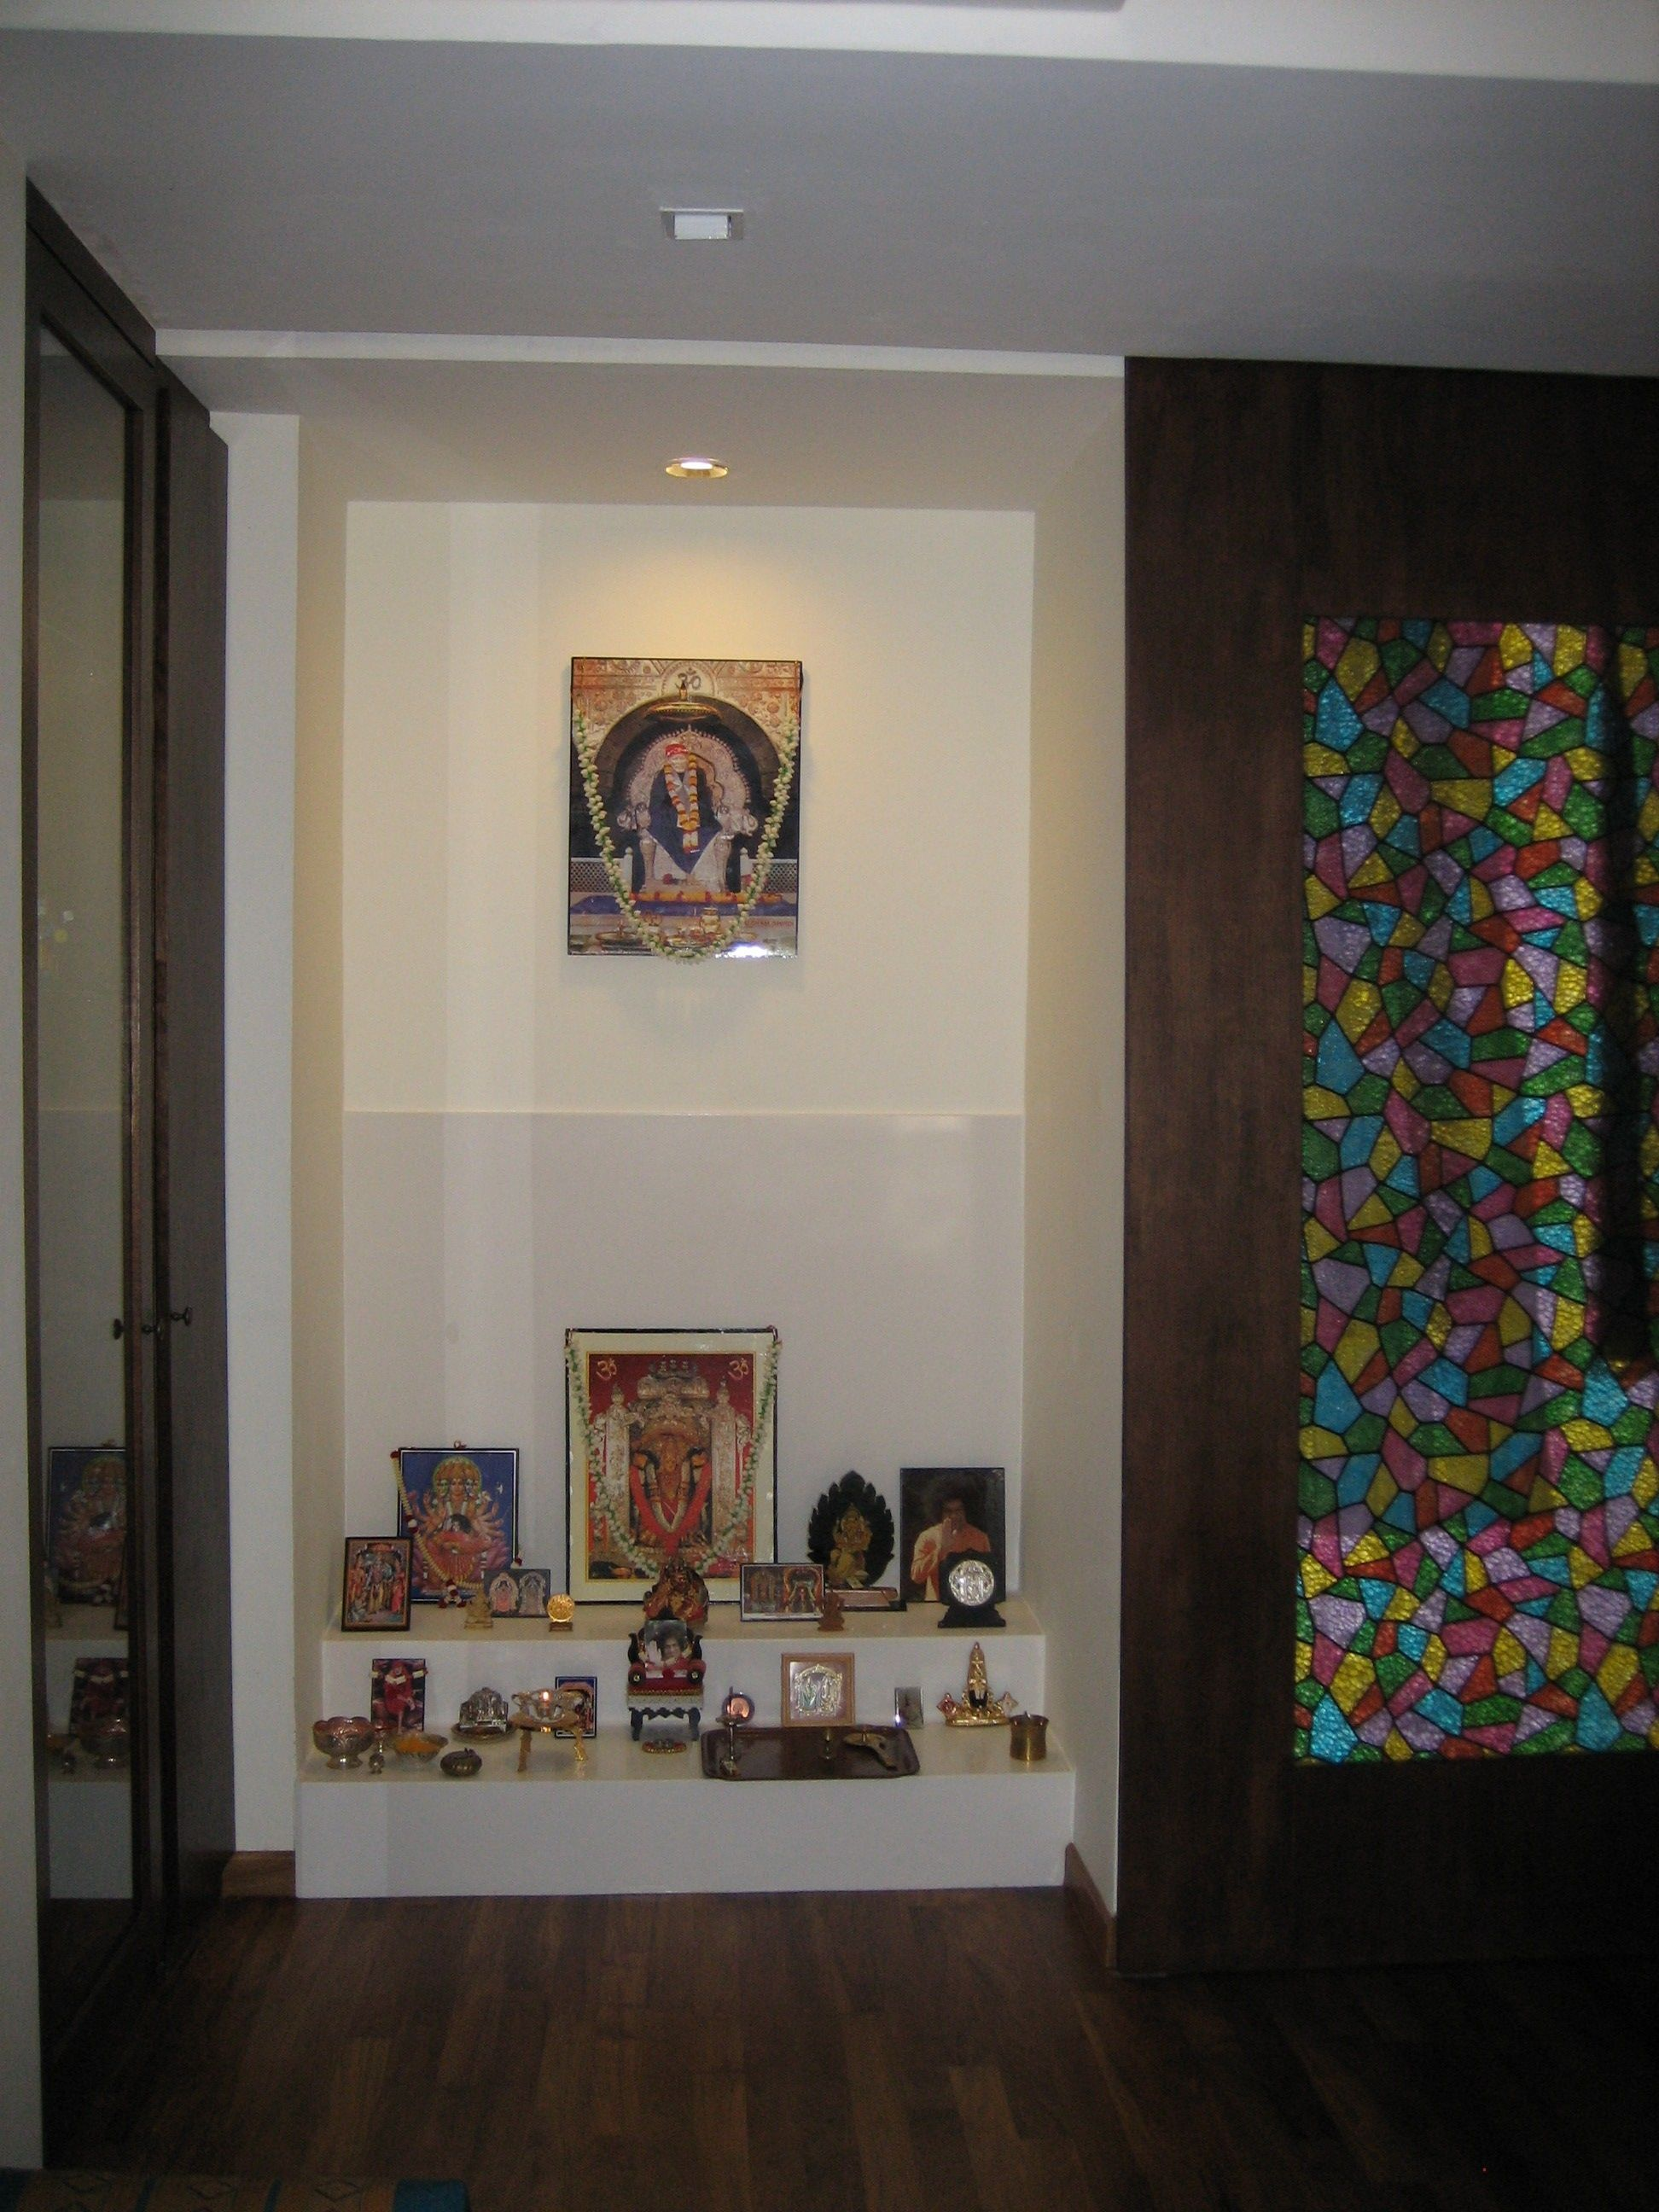 Puja room design home mandir lamps doors vastu idols placement pooja room design Home decor wallpaper bangalore